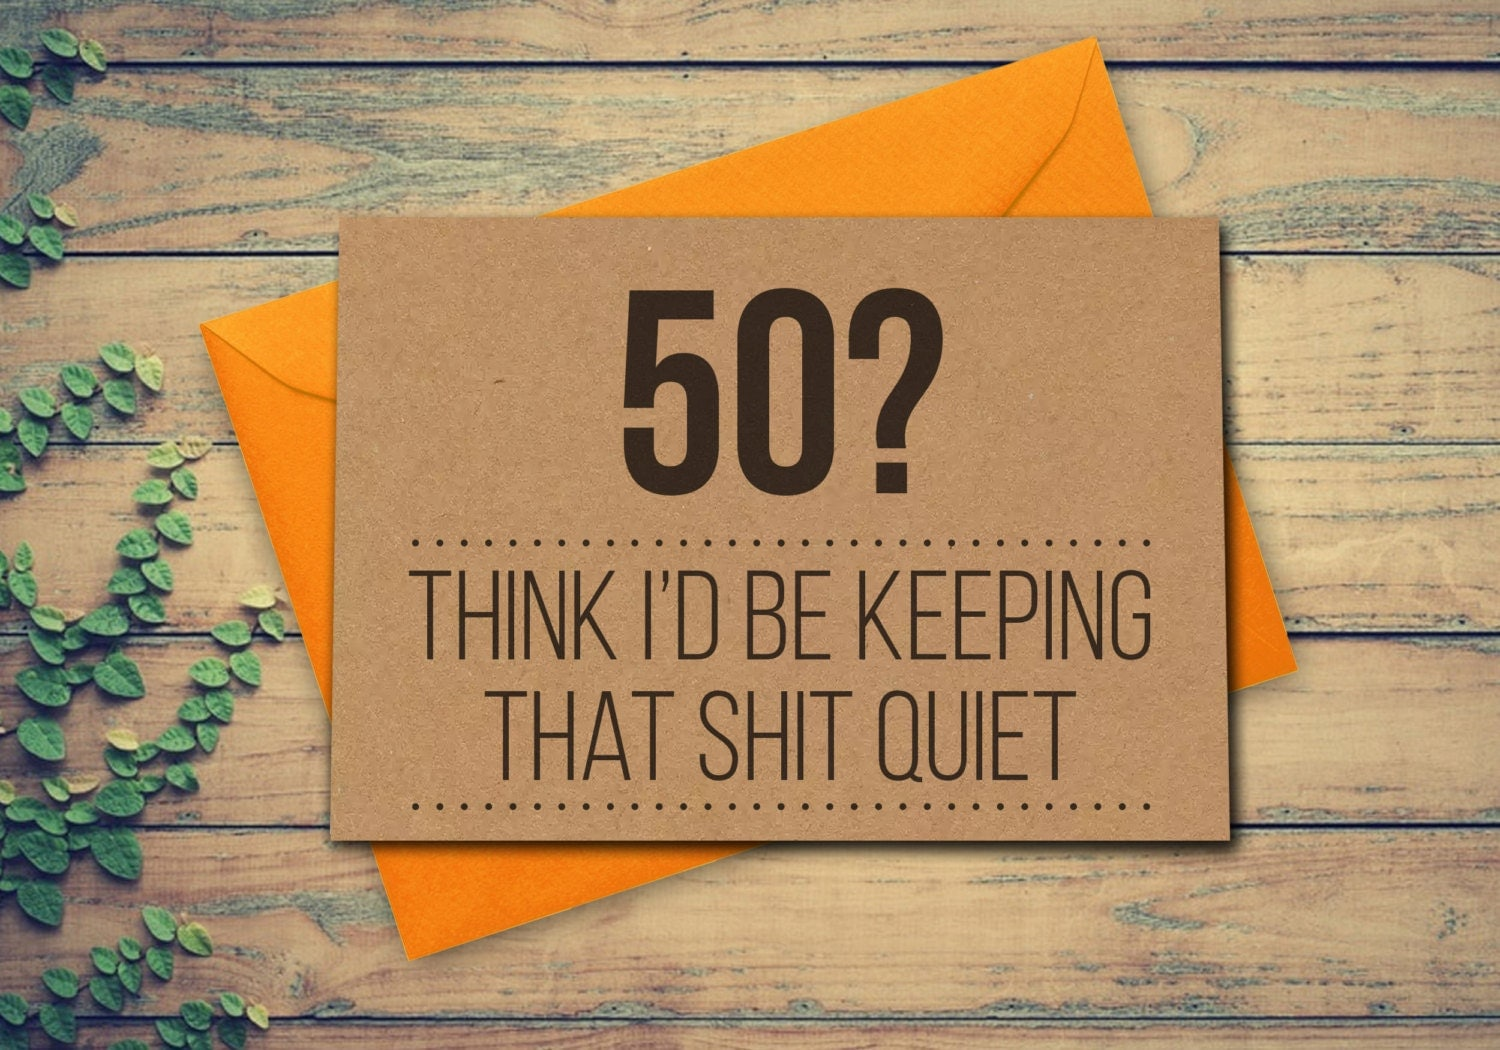 Funny 50th Birthday Card 50 Card Think Id be keeping that shit – Greeting Cards for 50th Birthday